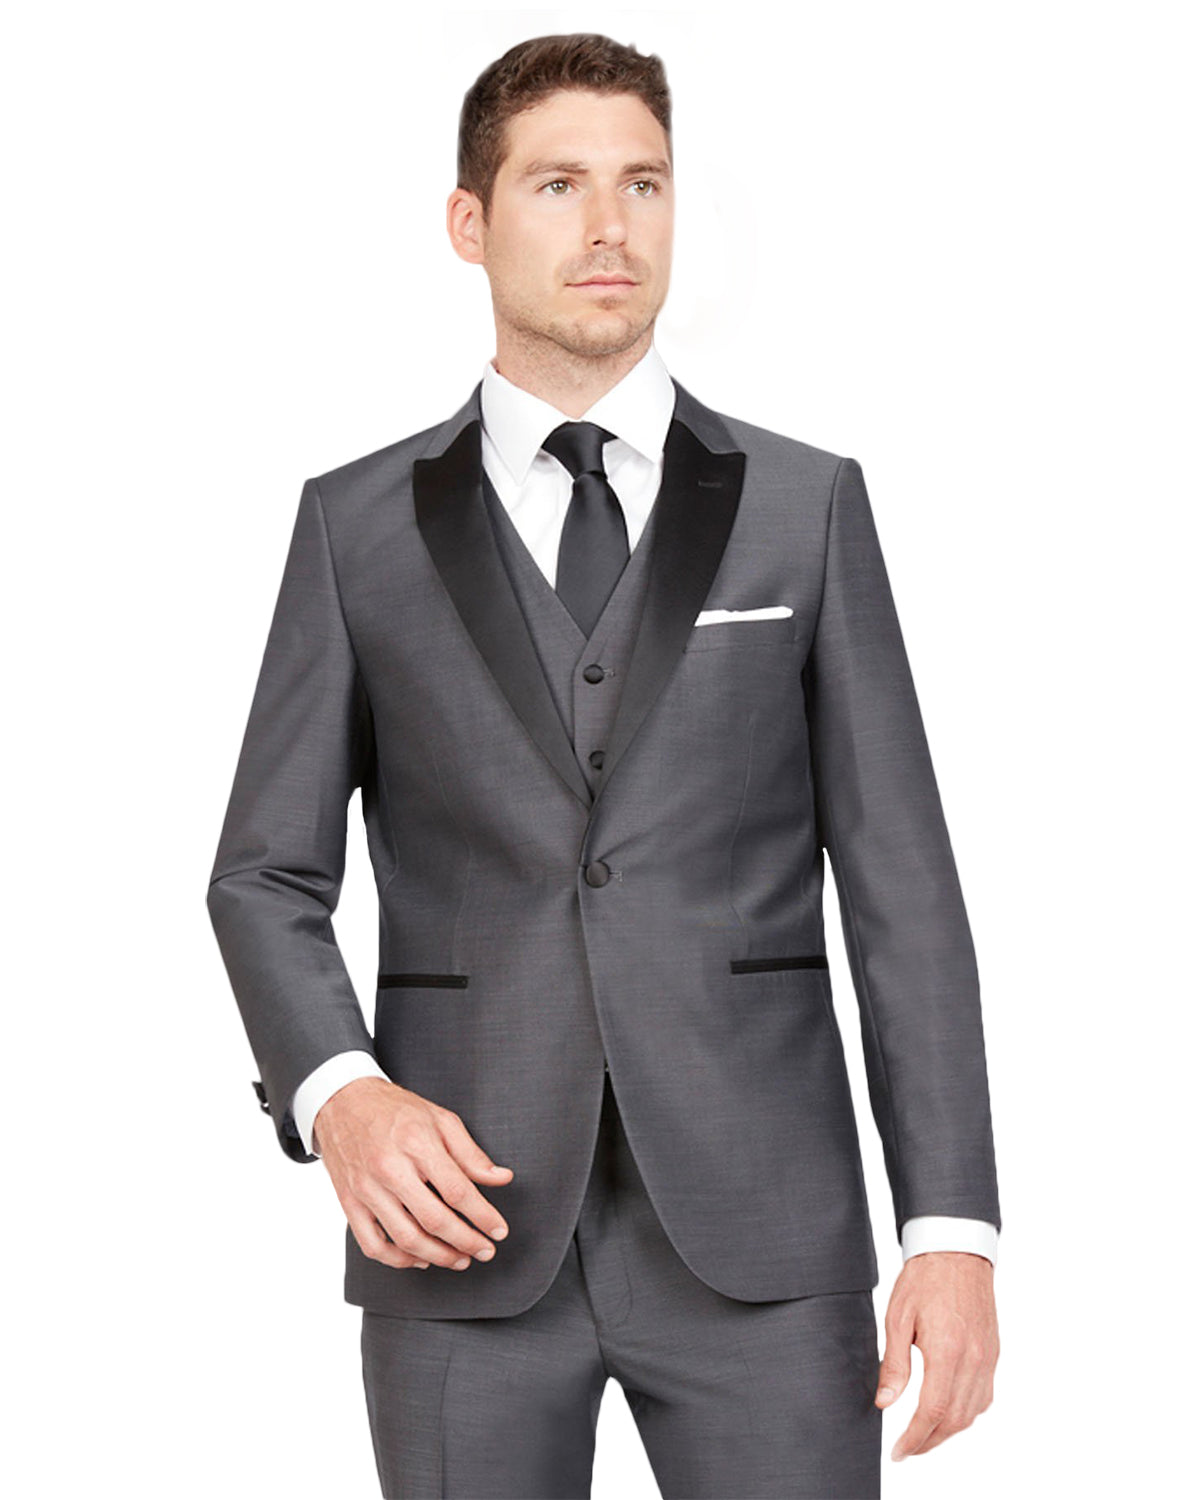 Dark Grey With Black Peak Lapel Tuxedo Rental - Rainwater's Men's Clothing and Tuxedo Rental